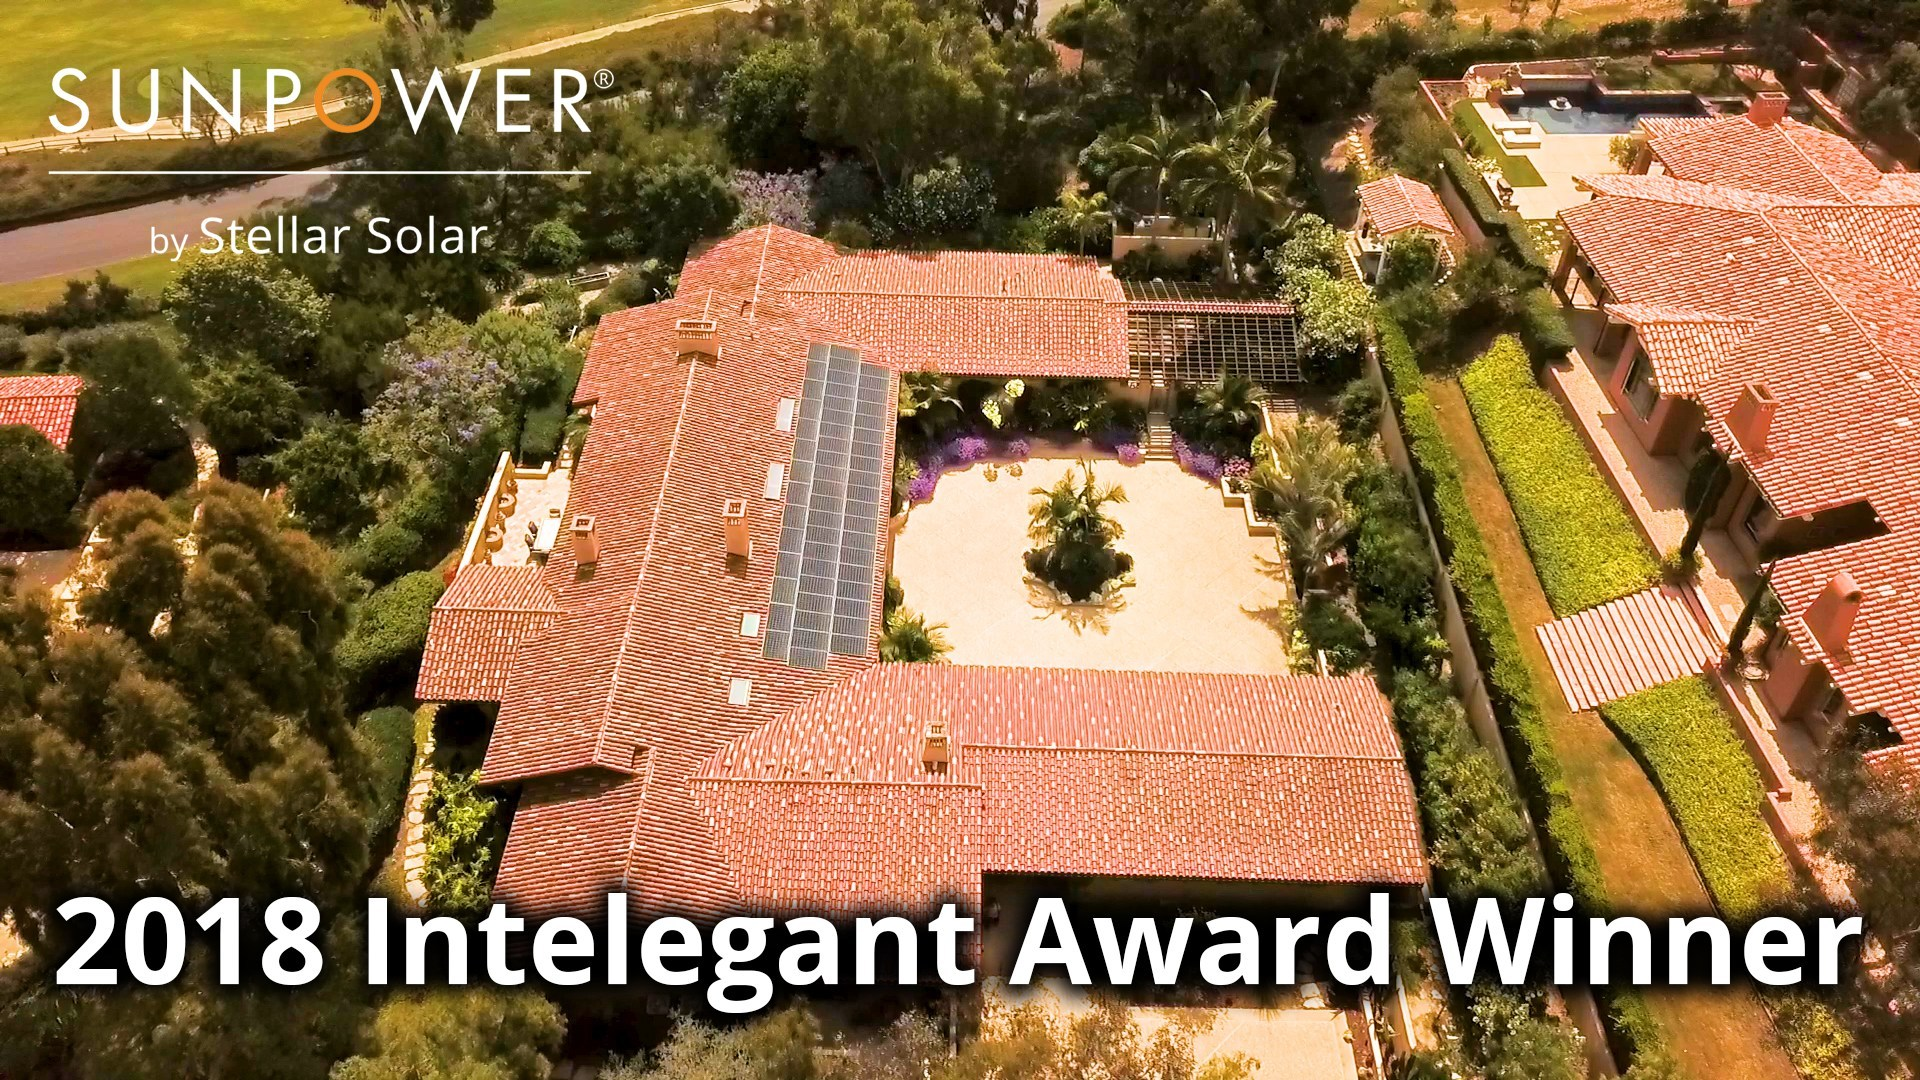 The SunPower by Stellar Solar team accepting their 2018 National Intelegant Award for design excellence